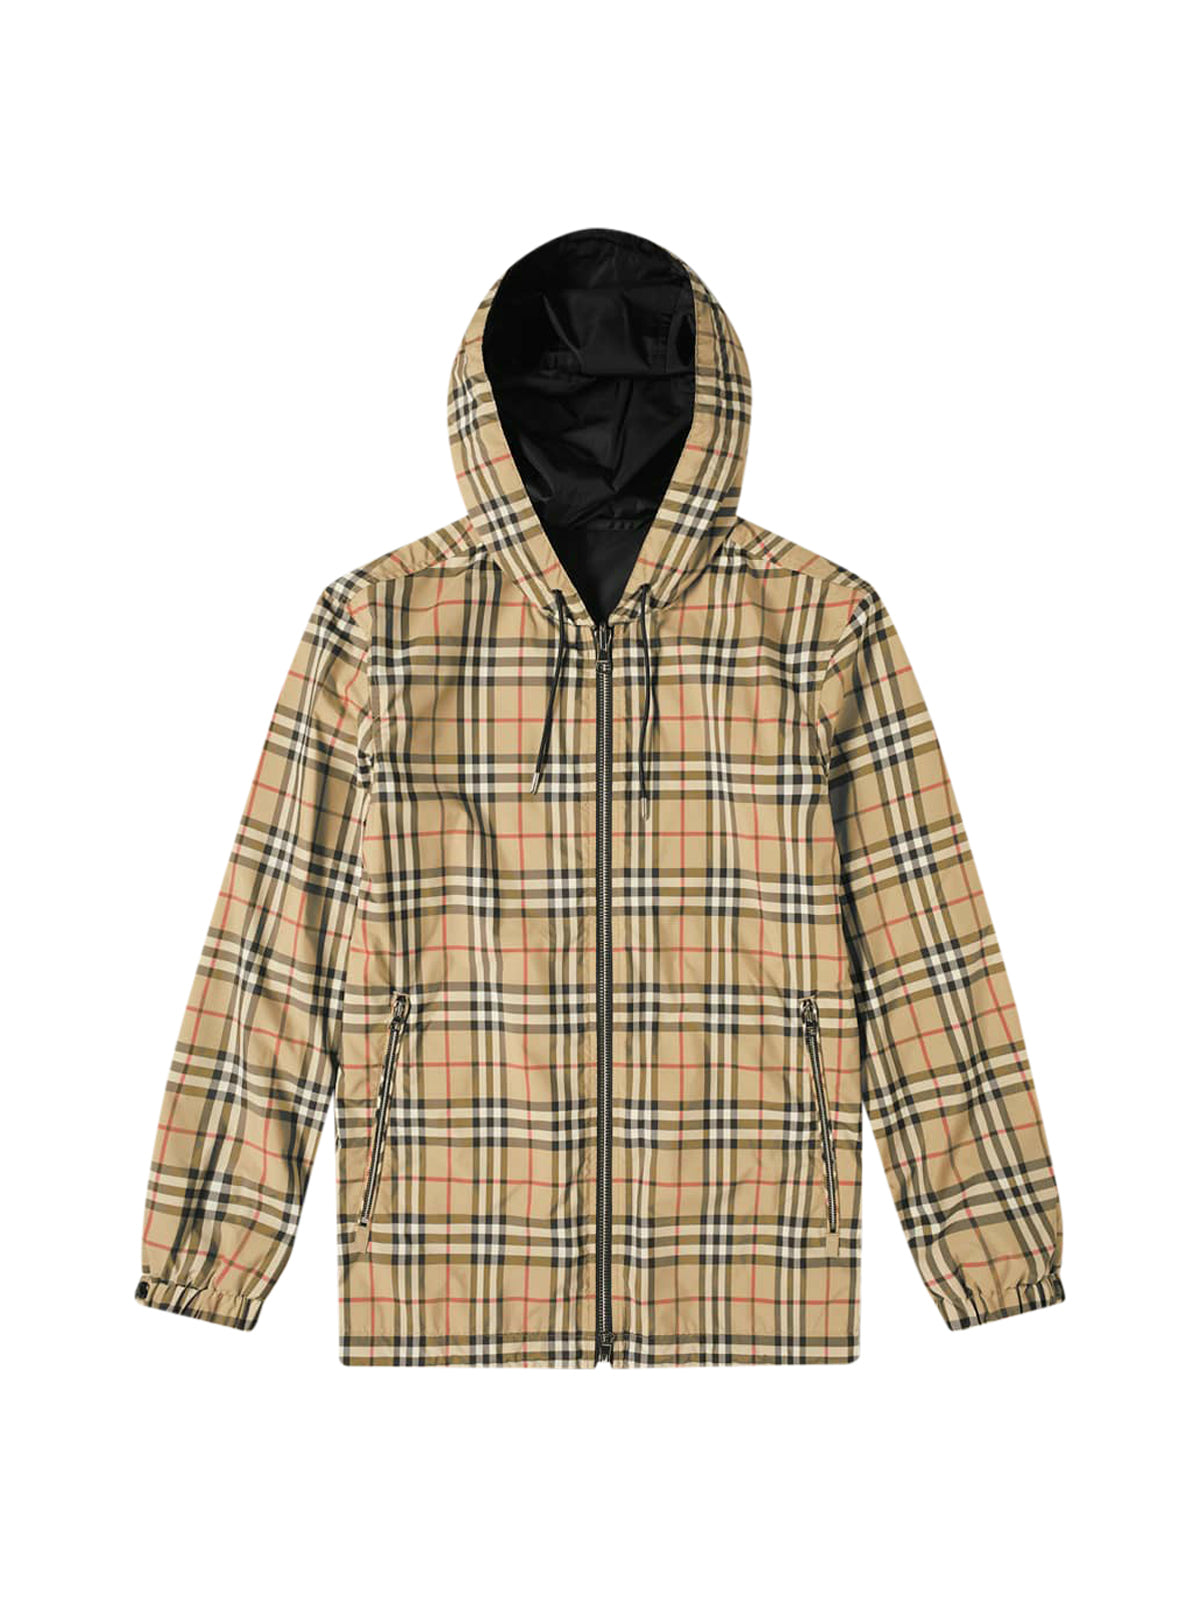 STRETON CHECK REVERSIBLE JACKET